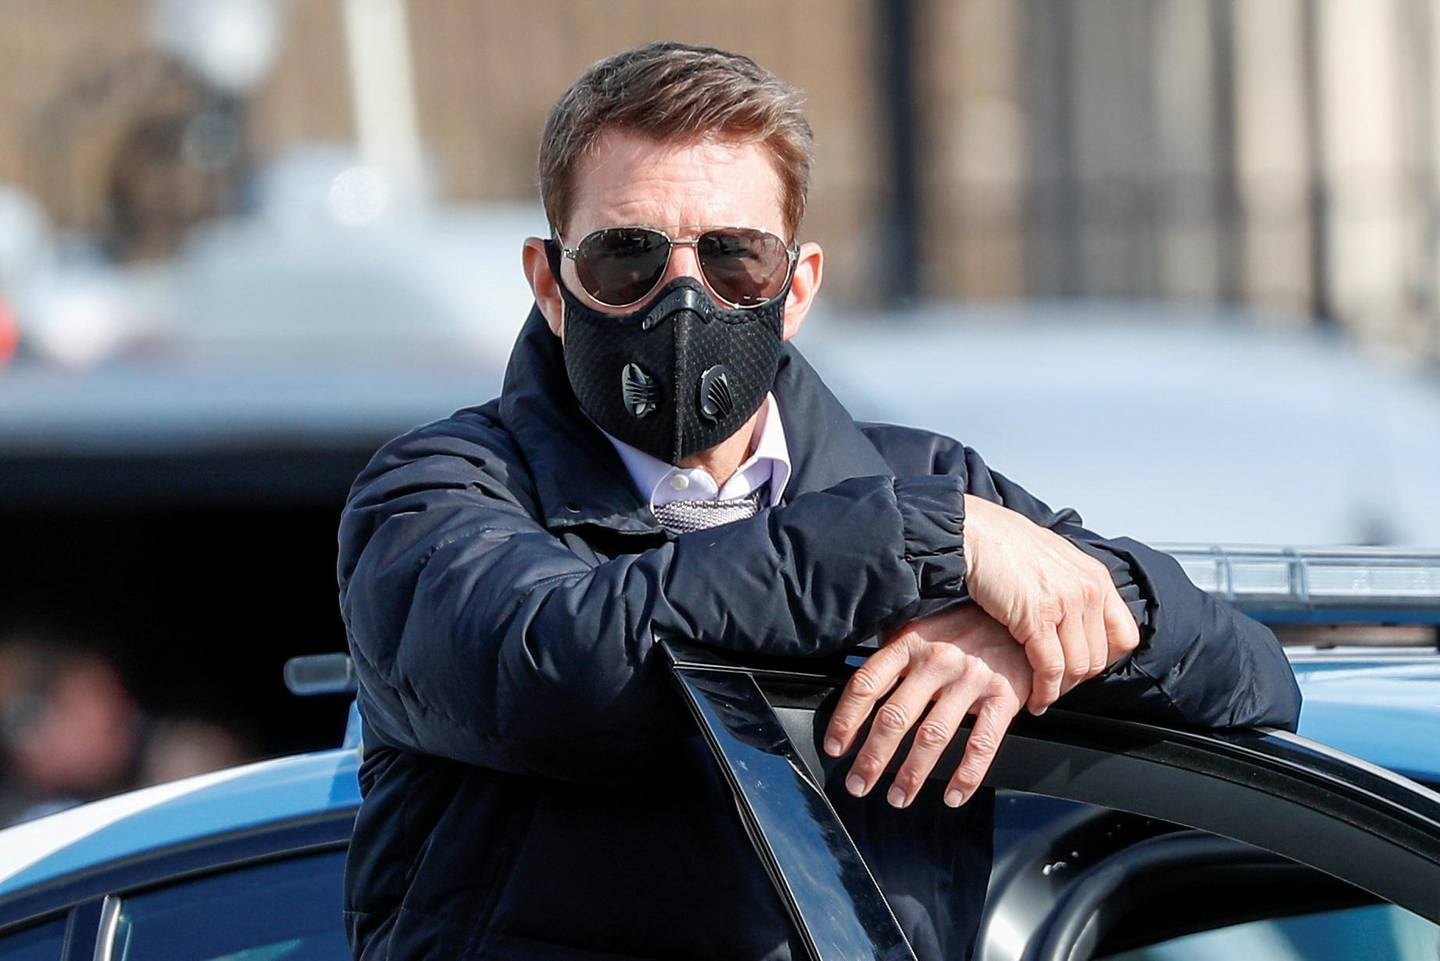 """FILE PHOTO: Actor Tom Cruise is seen on the set of """"Mission Impossible 7"""" while filming in Rome, Italy October 13, 2020. REUTERS/Guglielmo Mangiapane/File Photo"""